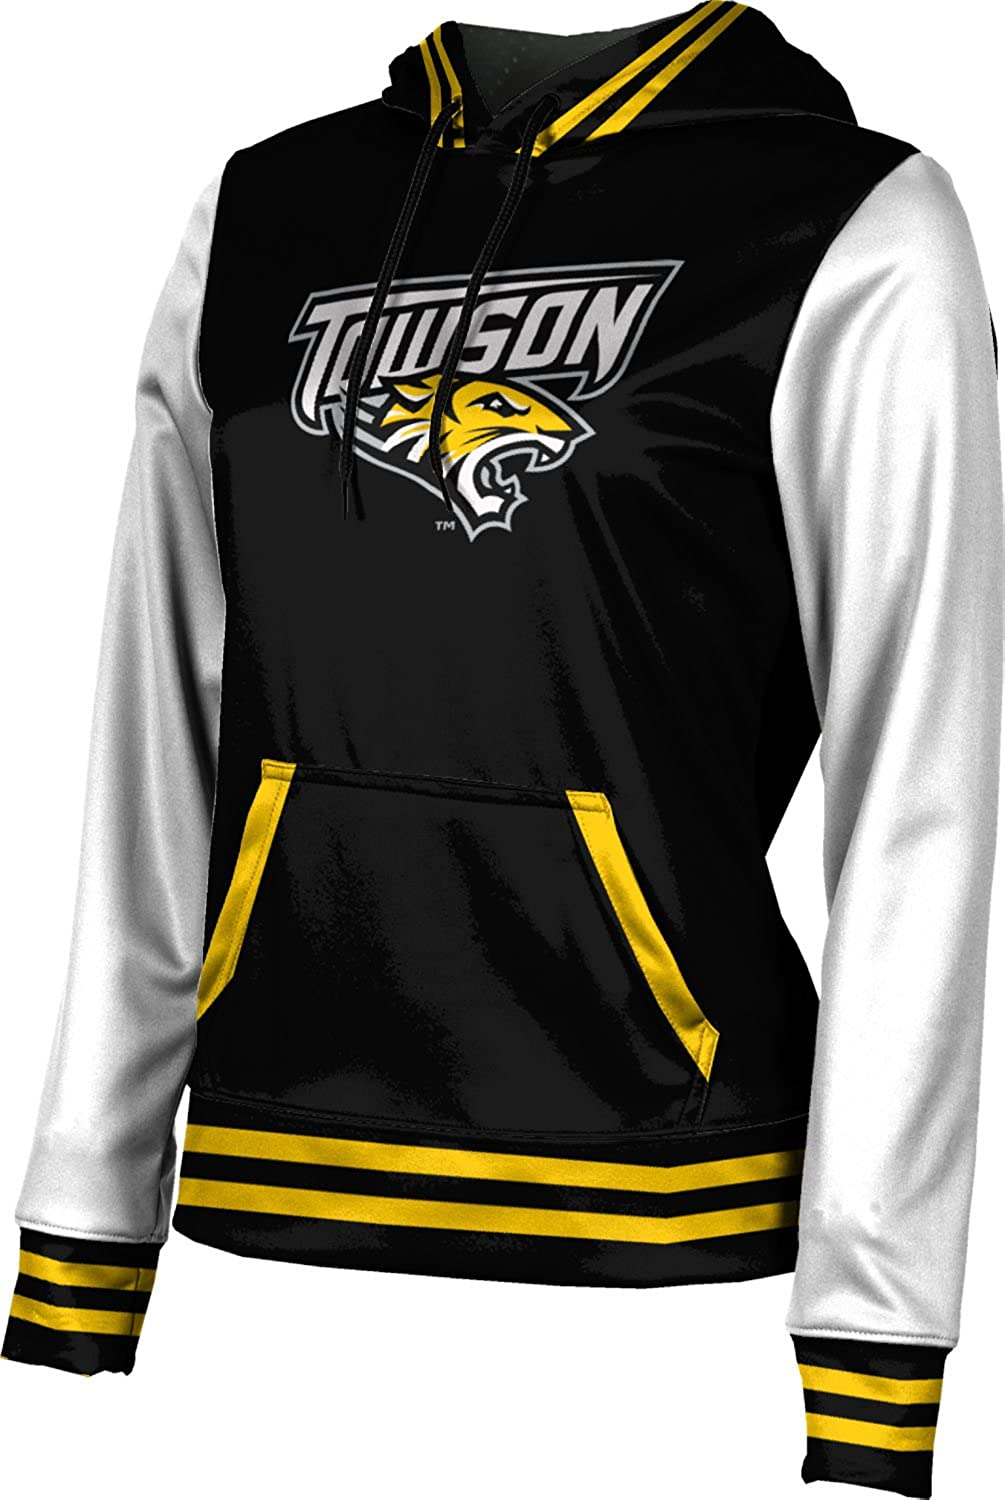 ProSphere Women's Towson University Letterman Pullover Hoodie